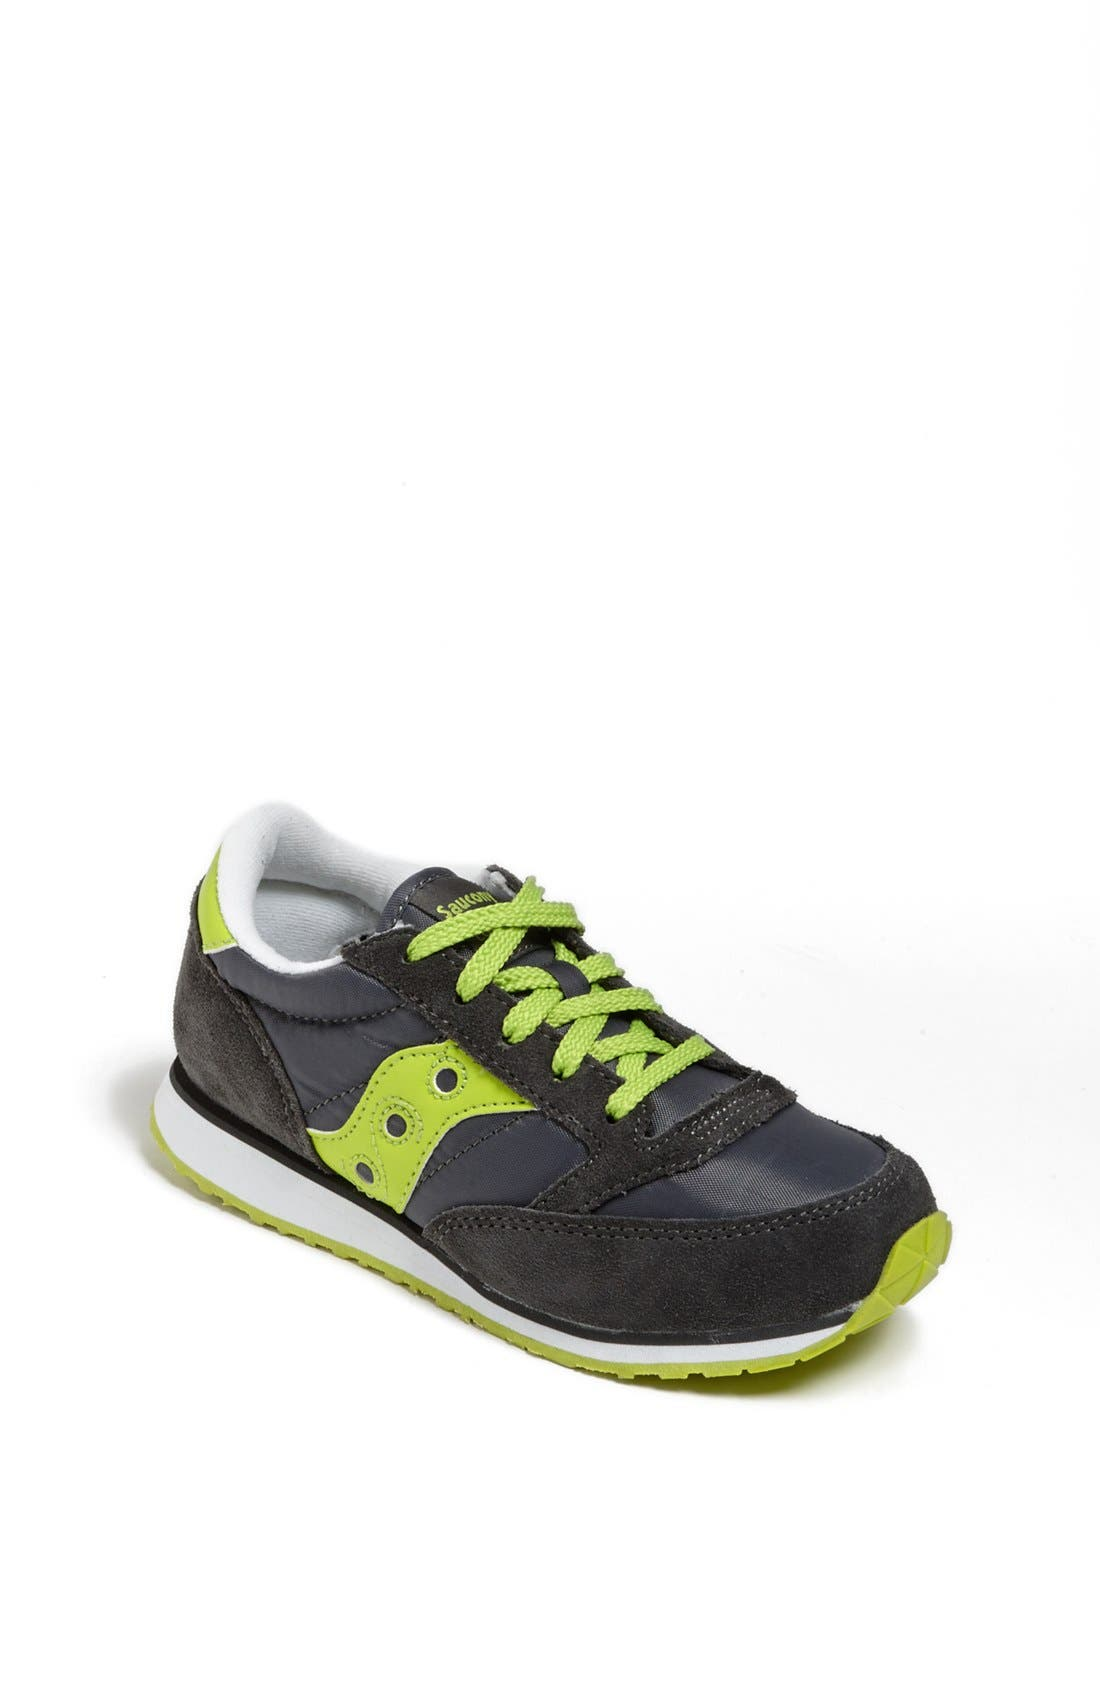 Alternate Image 1 Selected - Saucony 'Jazz - LowPro' Sneaker (Toddler & Little Kid)